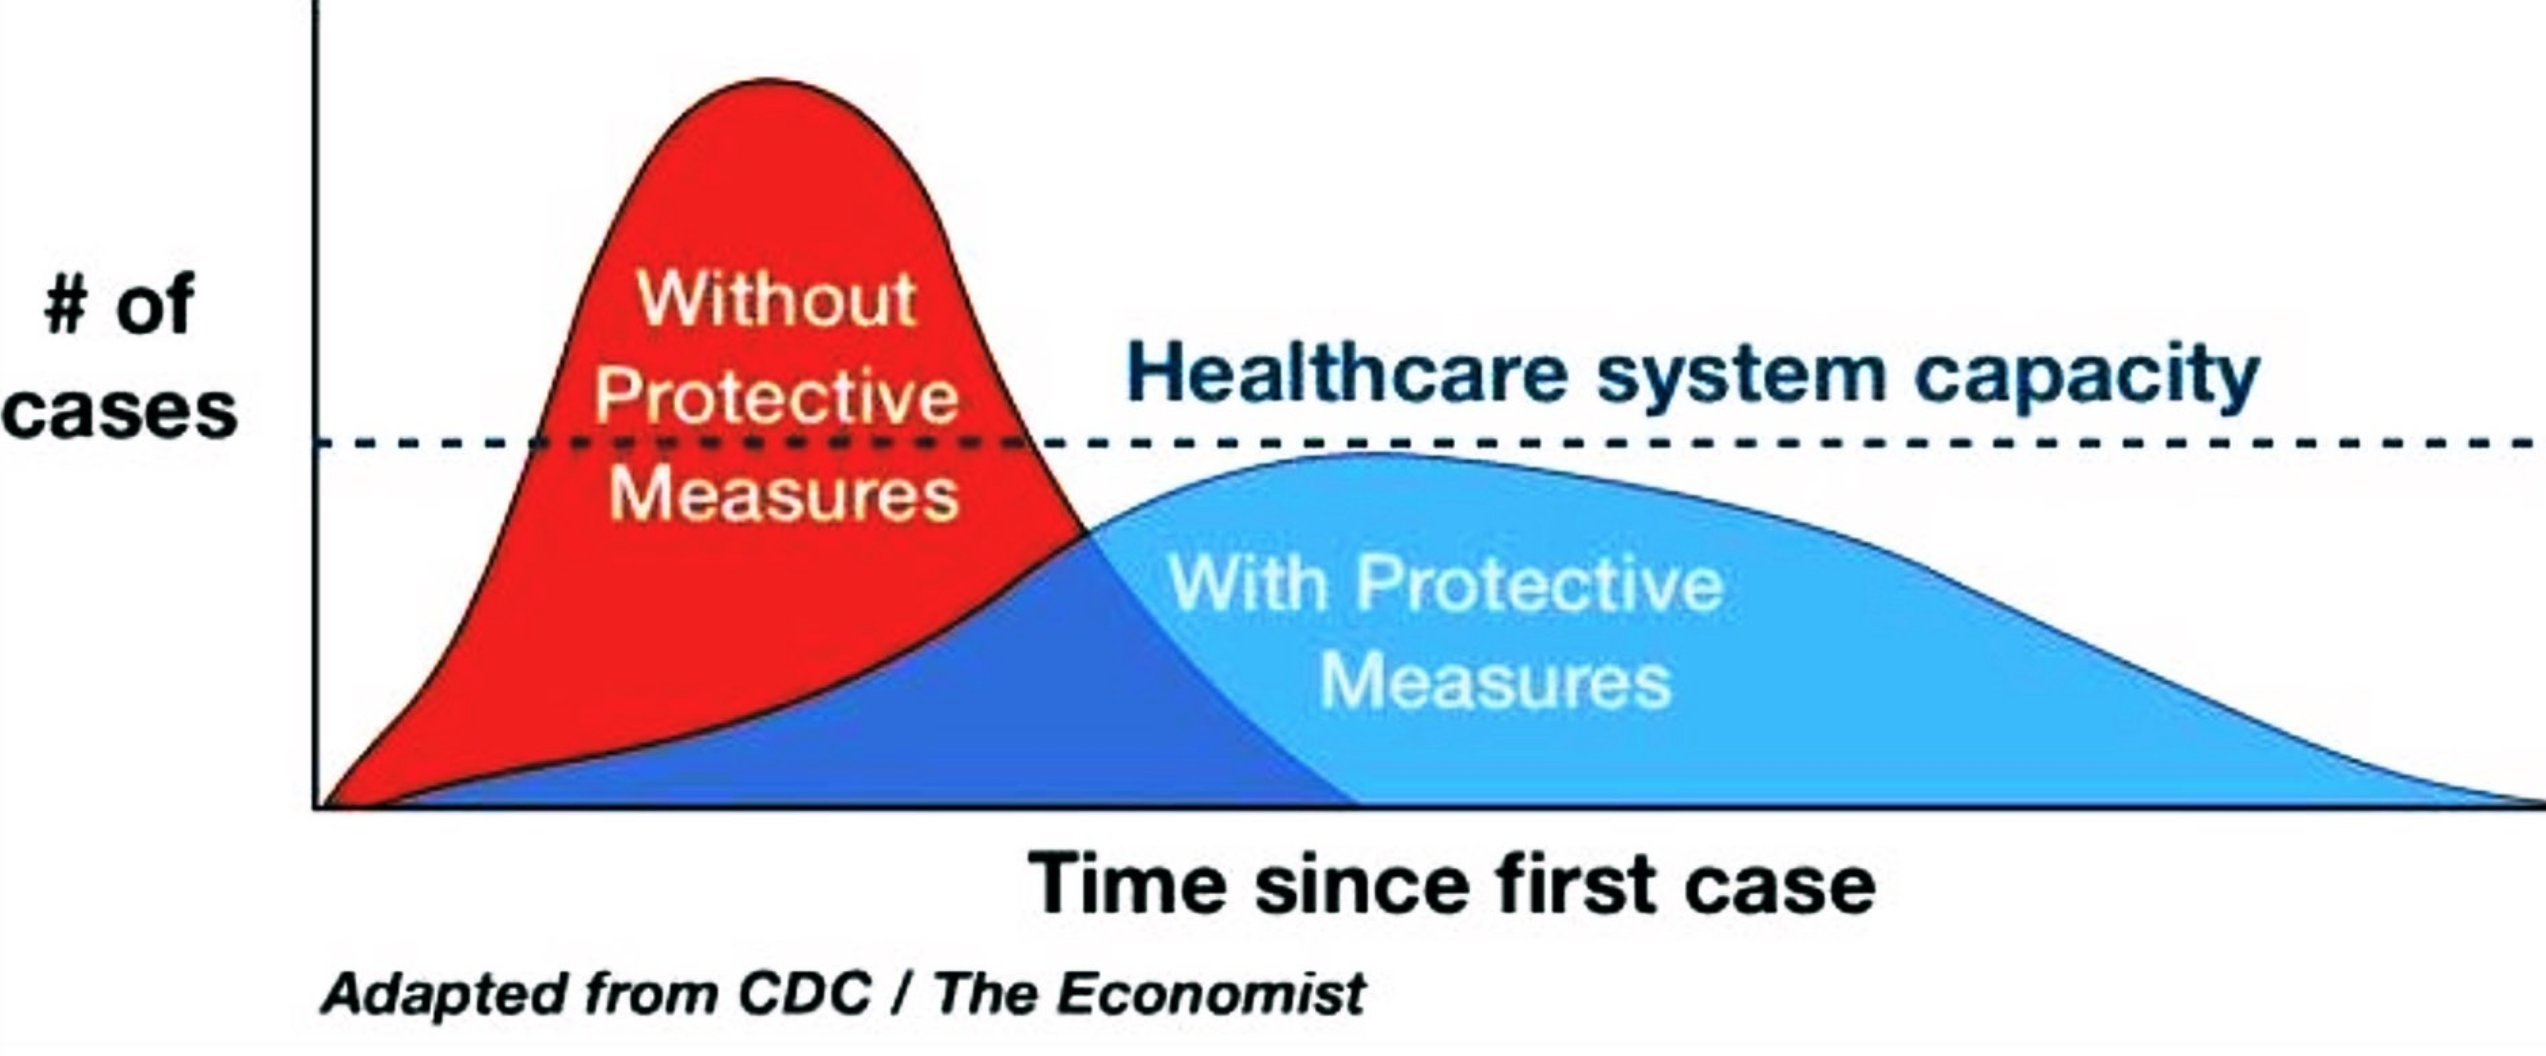 Flattening the pandemic curve